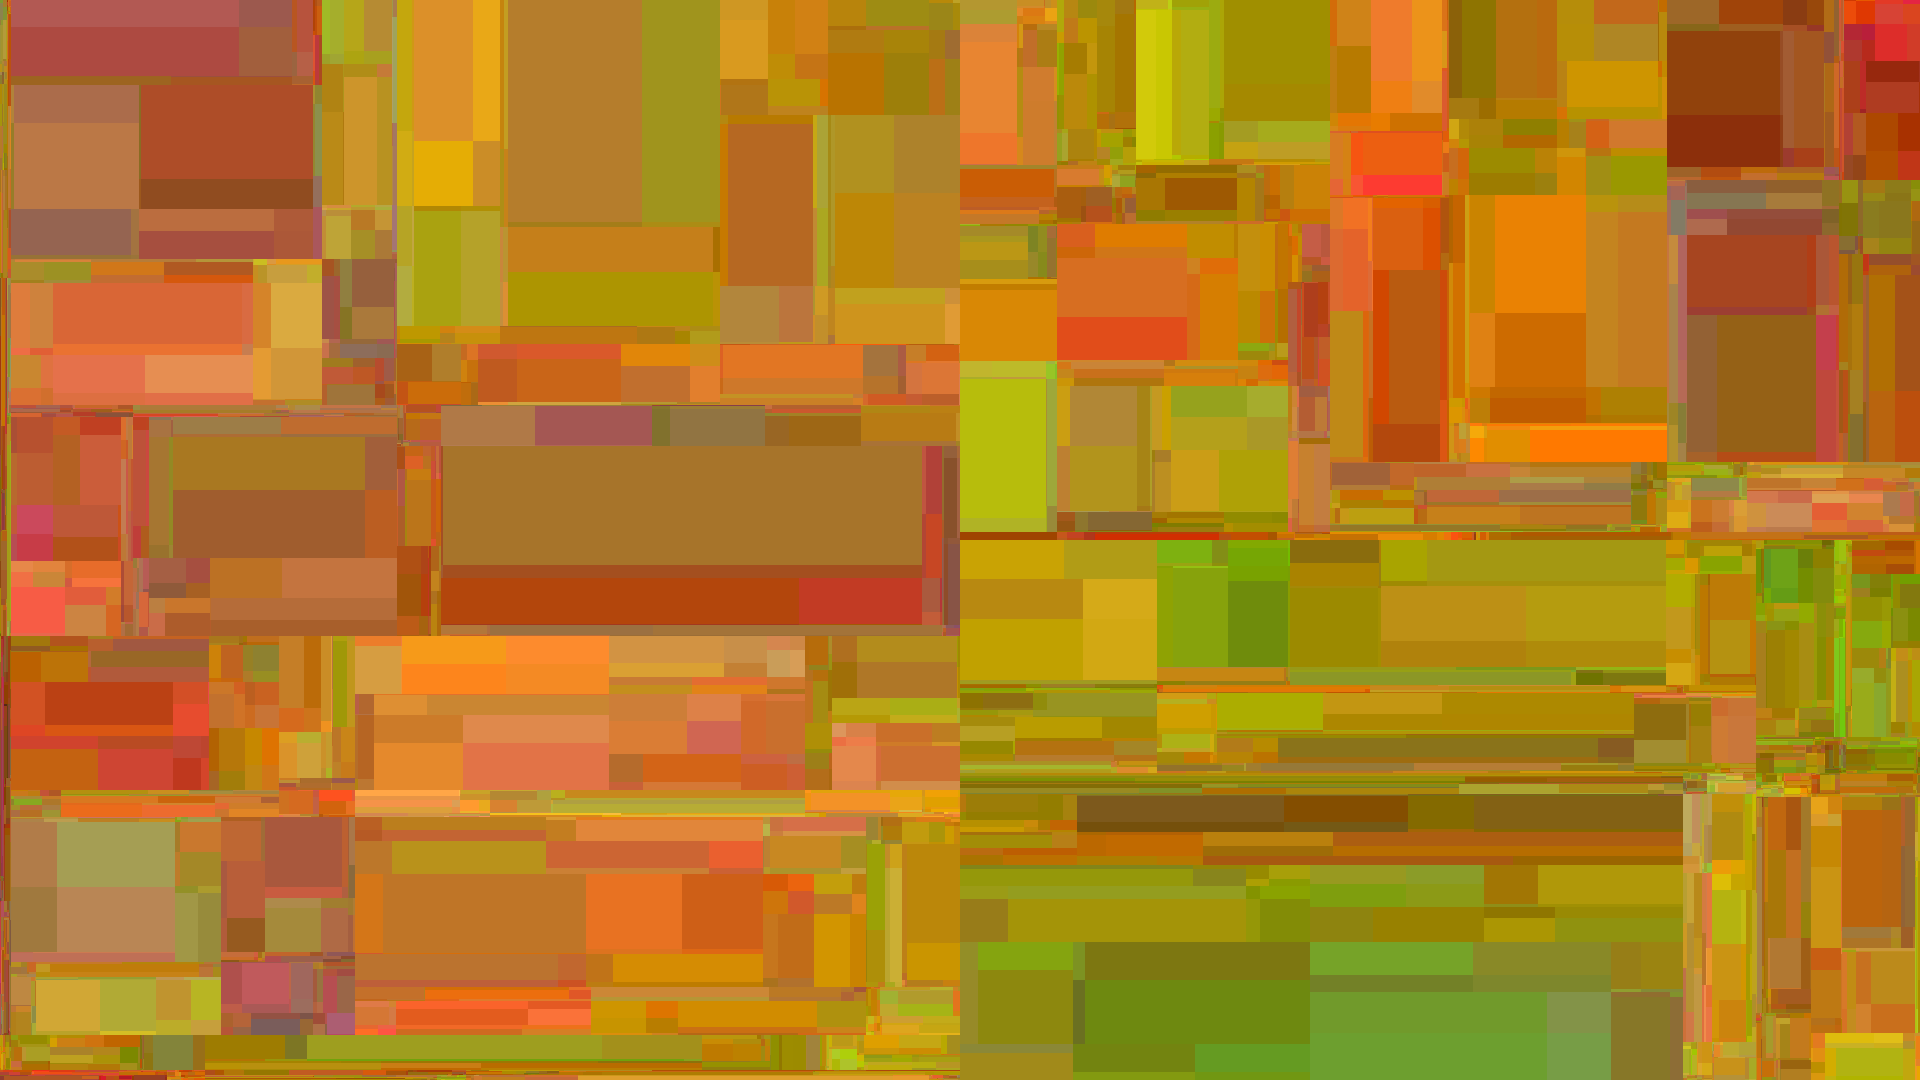 1420770392083.png